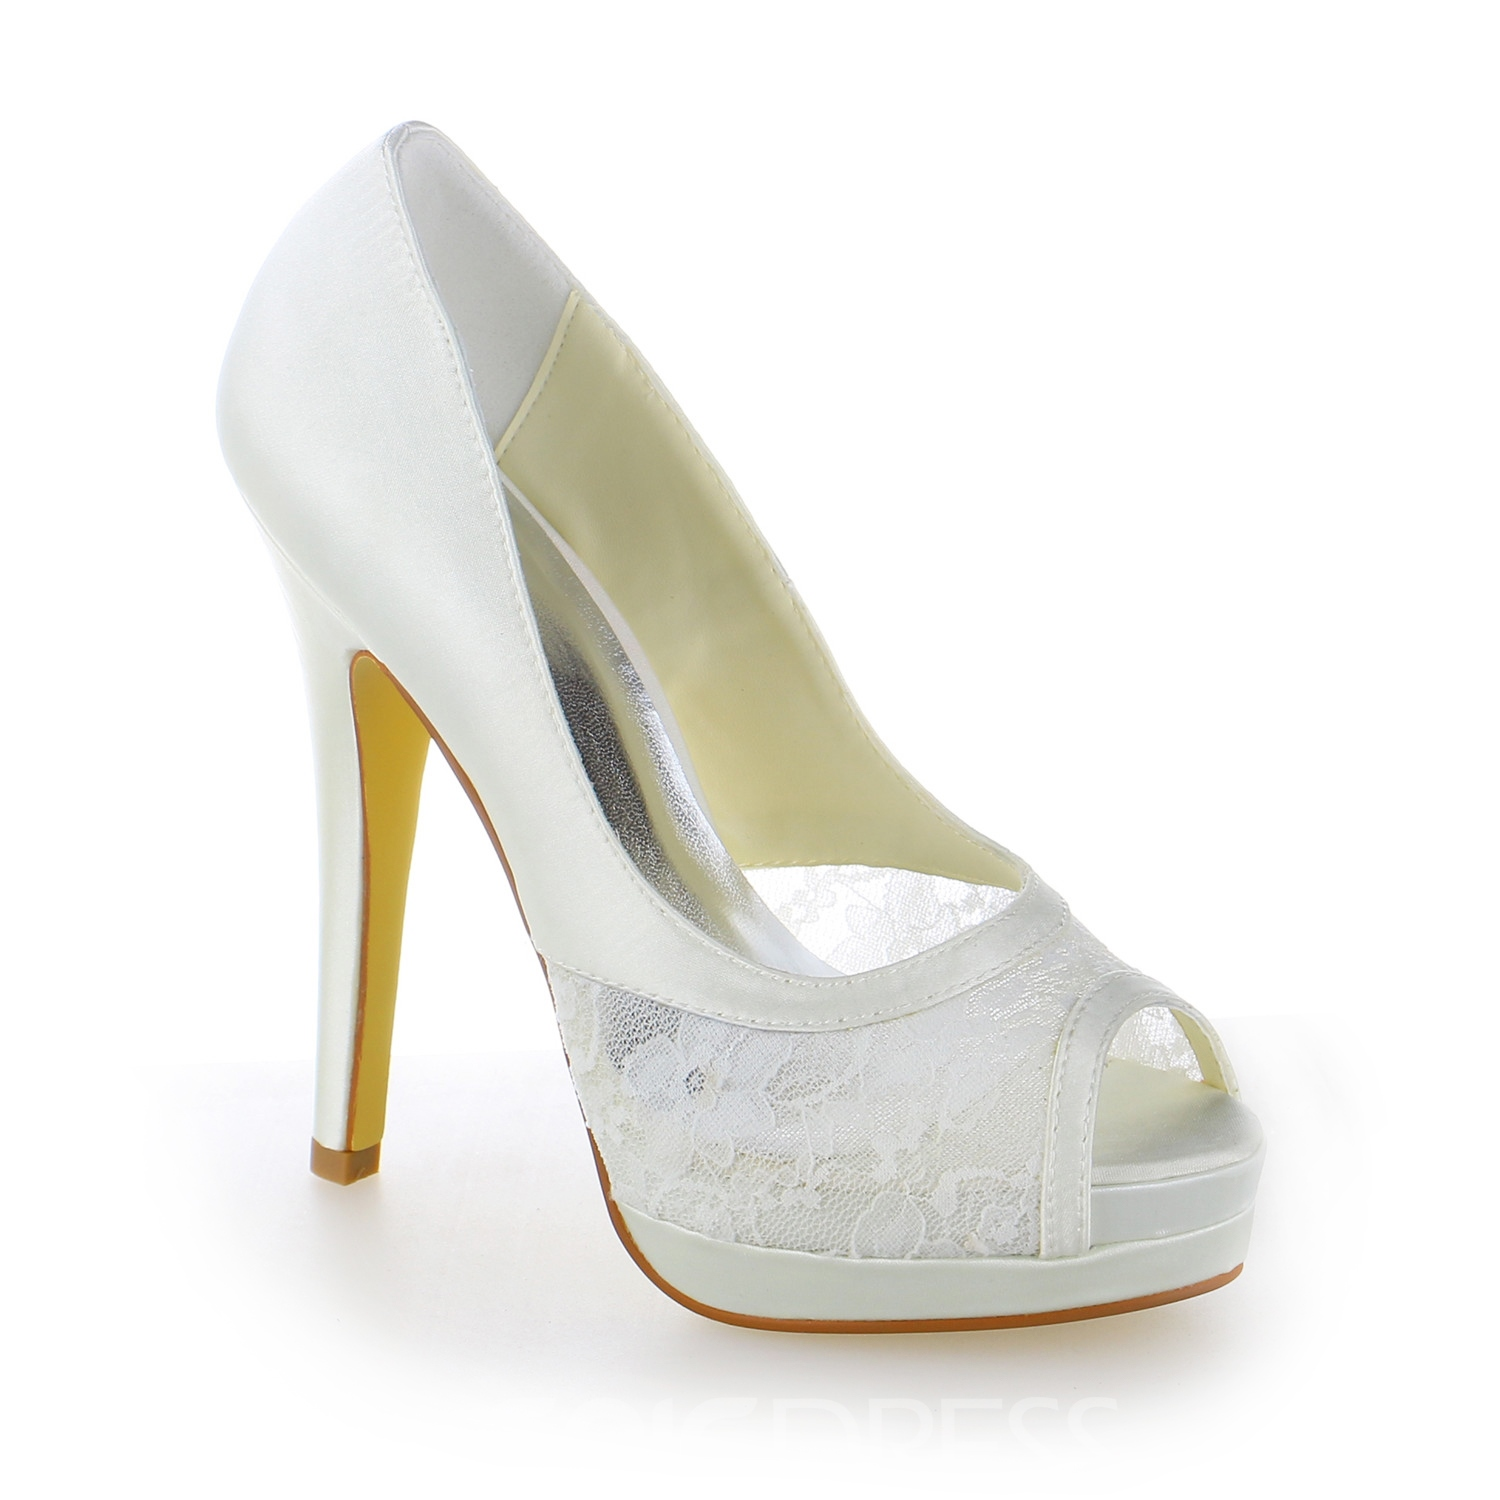 Vogue Lace Peep-Toe Stiletto Wedding Shoes